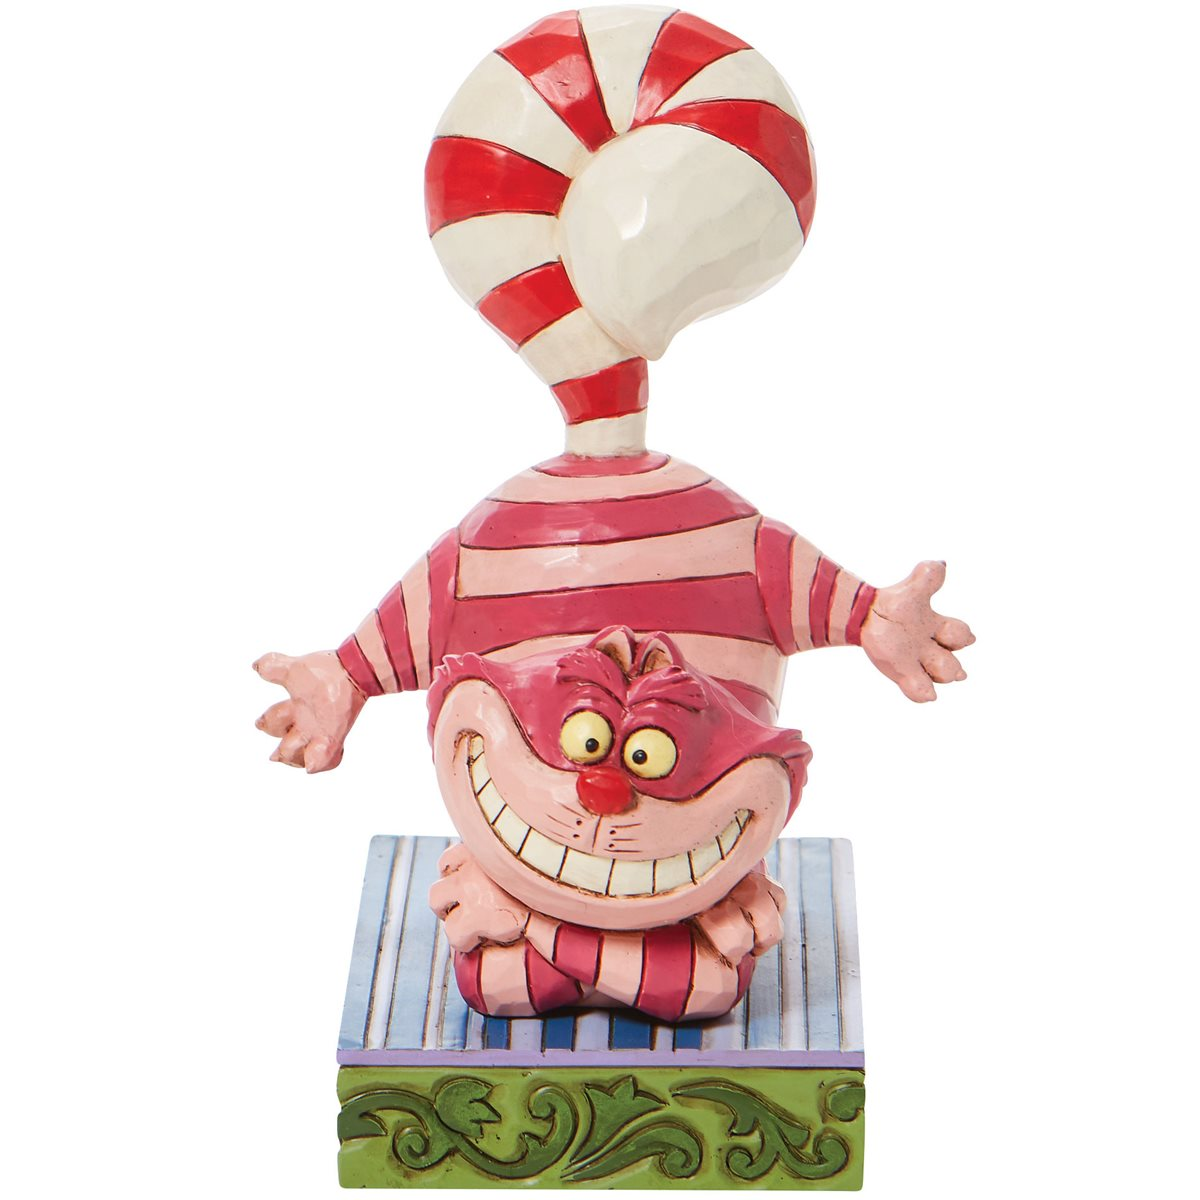 Disney Traditions Jim Shore/'s Alice in Wonderland Cheshire Cat Figure